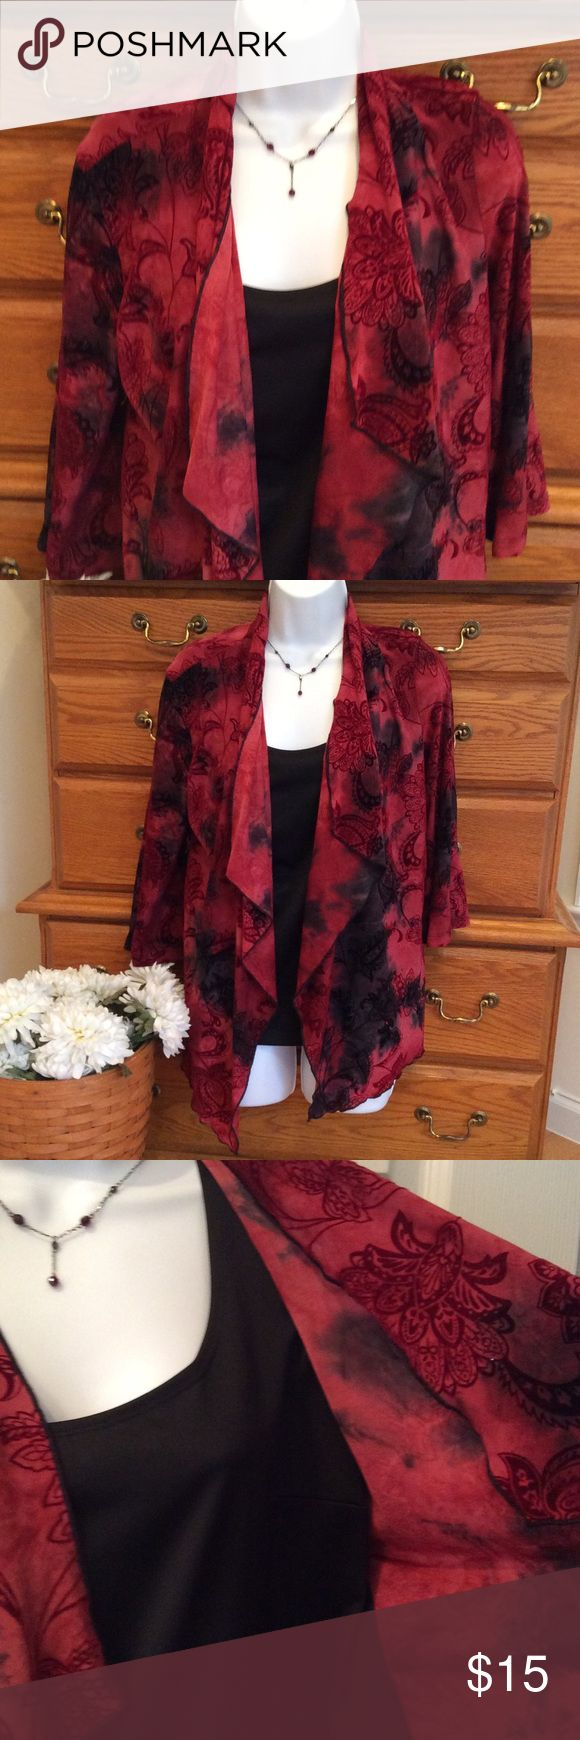 """Dress Barn One Piece Blouse With Cardigans Polyester, nylon and spandex. EUC.  Colors are black, reds, and a dark purple with a touch of velvet on the flowers and leaves.  Approximately 24"""" in length but the front jacket is several inches longer in the front.. When laid flat and measured from armpit to armpit it is 20"""" across.   It is all in one as I tried to show in the third picture.  It is Petite Large. Dress Barn Tops Blouses"""